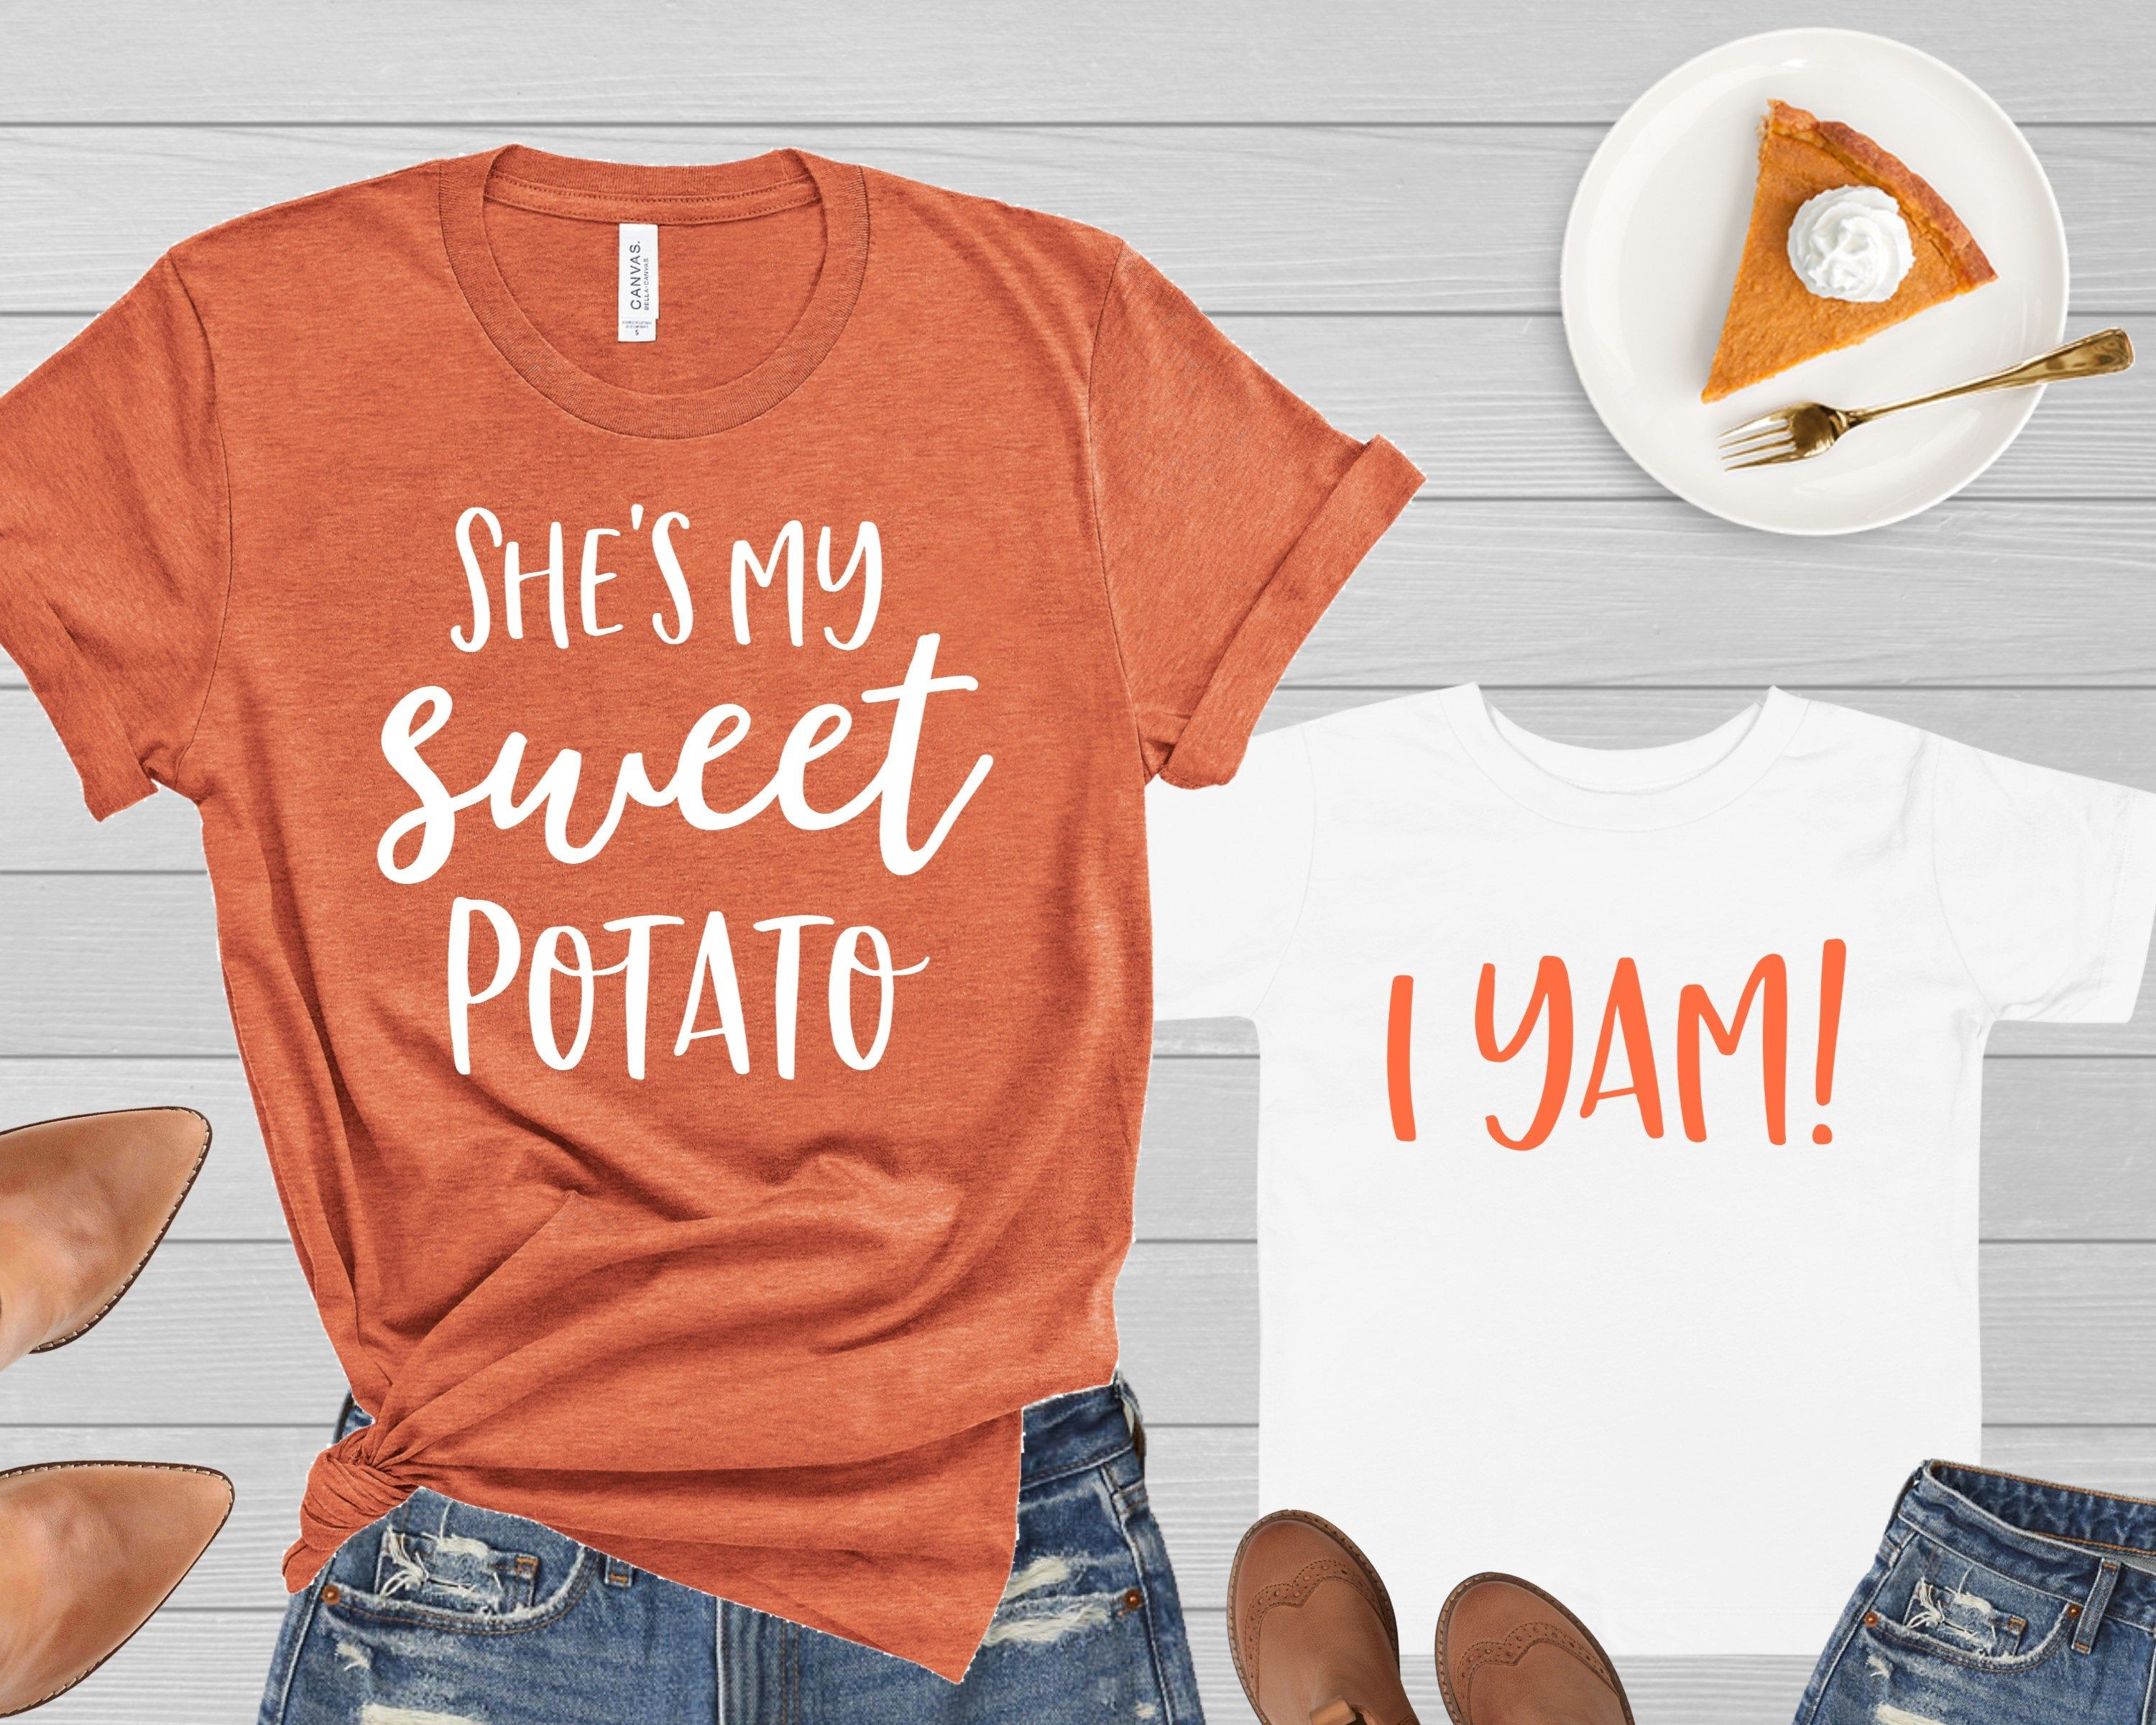 Mommy and Me Thanksgiving Shirts He's She's My Sweet Potato I Yam Funny Tshirt Mother Daughter Son Mom Baby Toddler Kid Boy Girl Fall Shirt